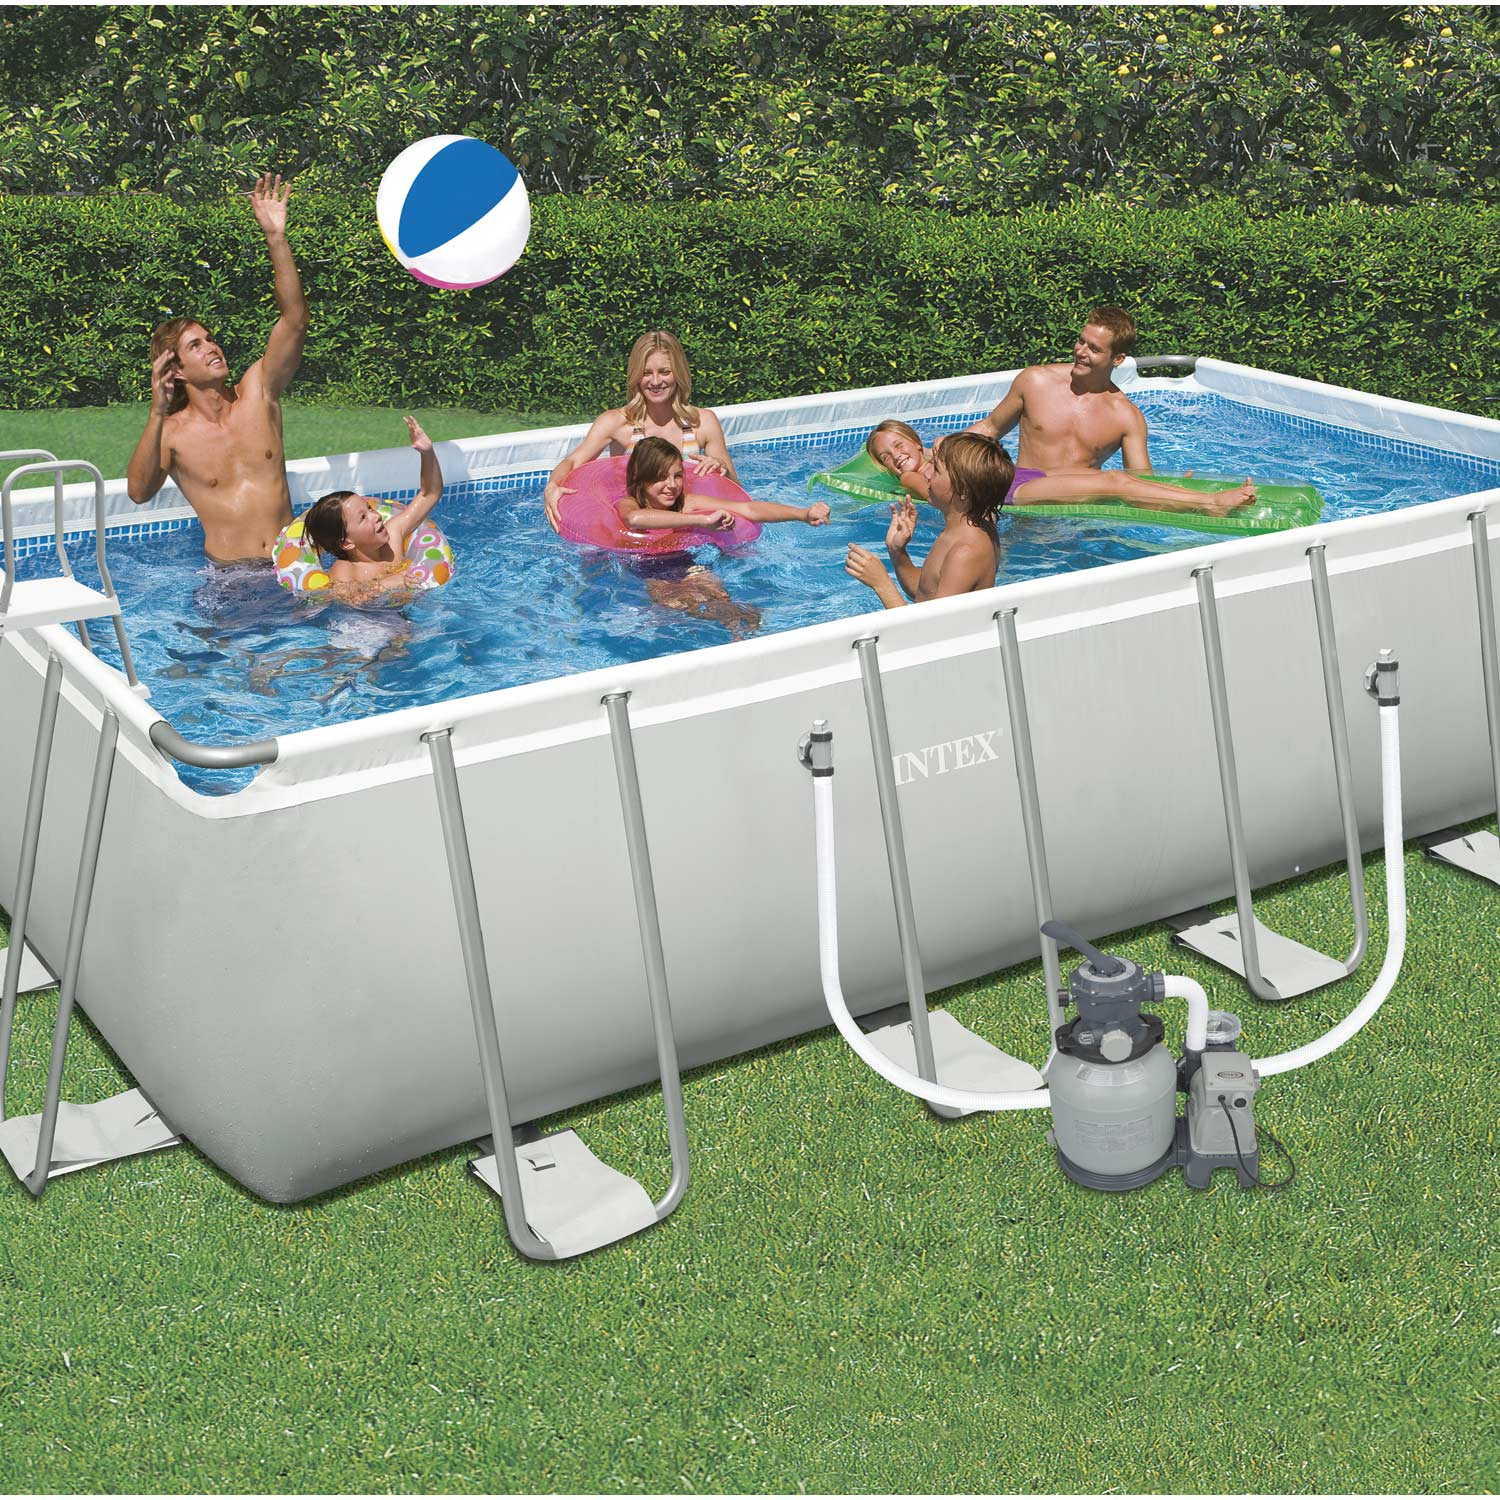 Piscine hors sol autoportante tubulaire ultra silver intex for Piscine hors sol jacuzzi